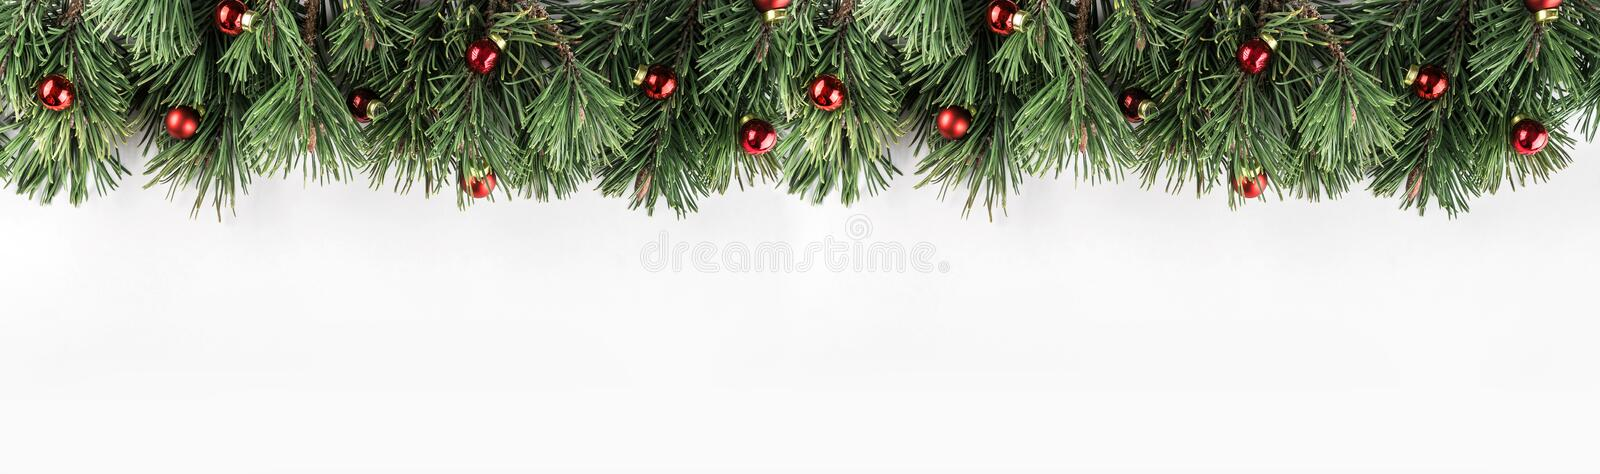 Christmas garland of Fir branches with red decoration on white background. Xmas and Happy New Year theme. Flat lay, top view, wide composition royalty free stock images